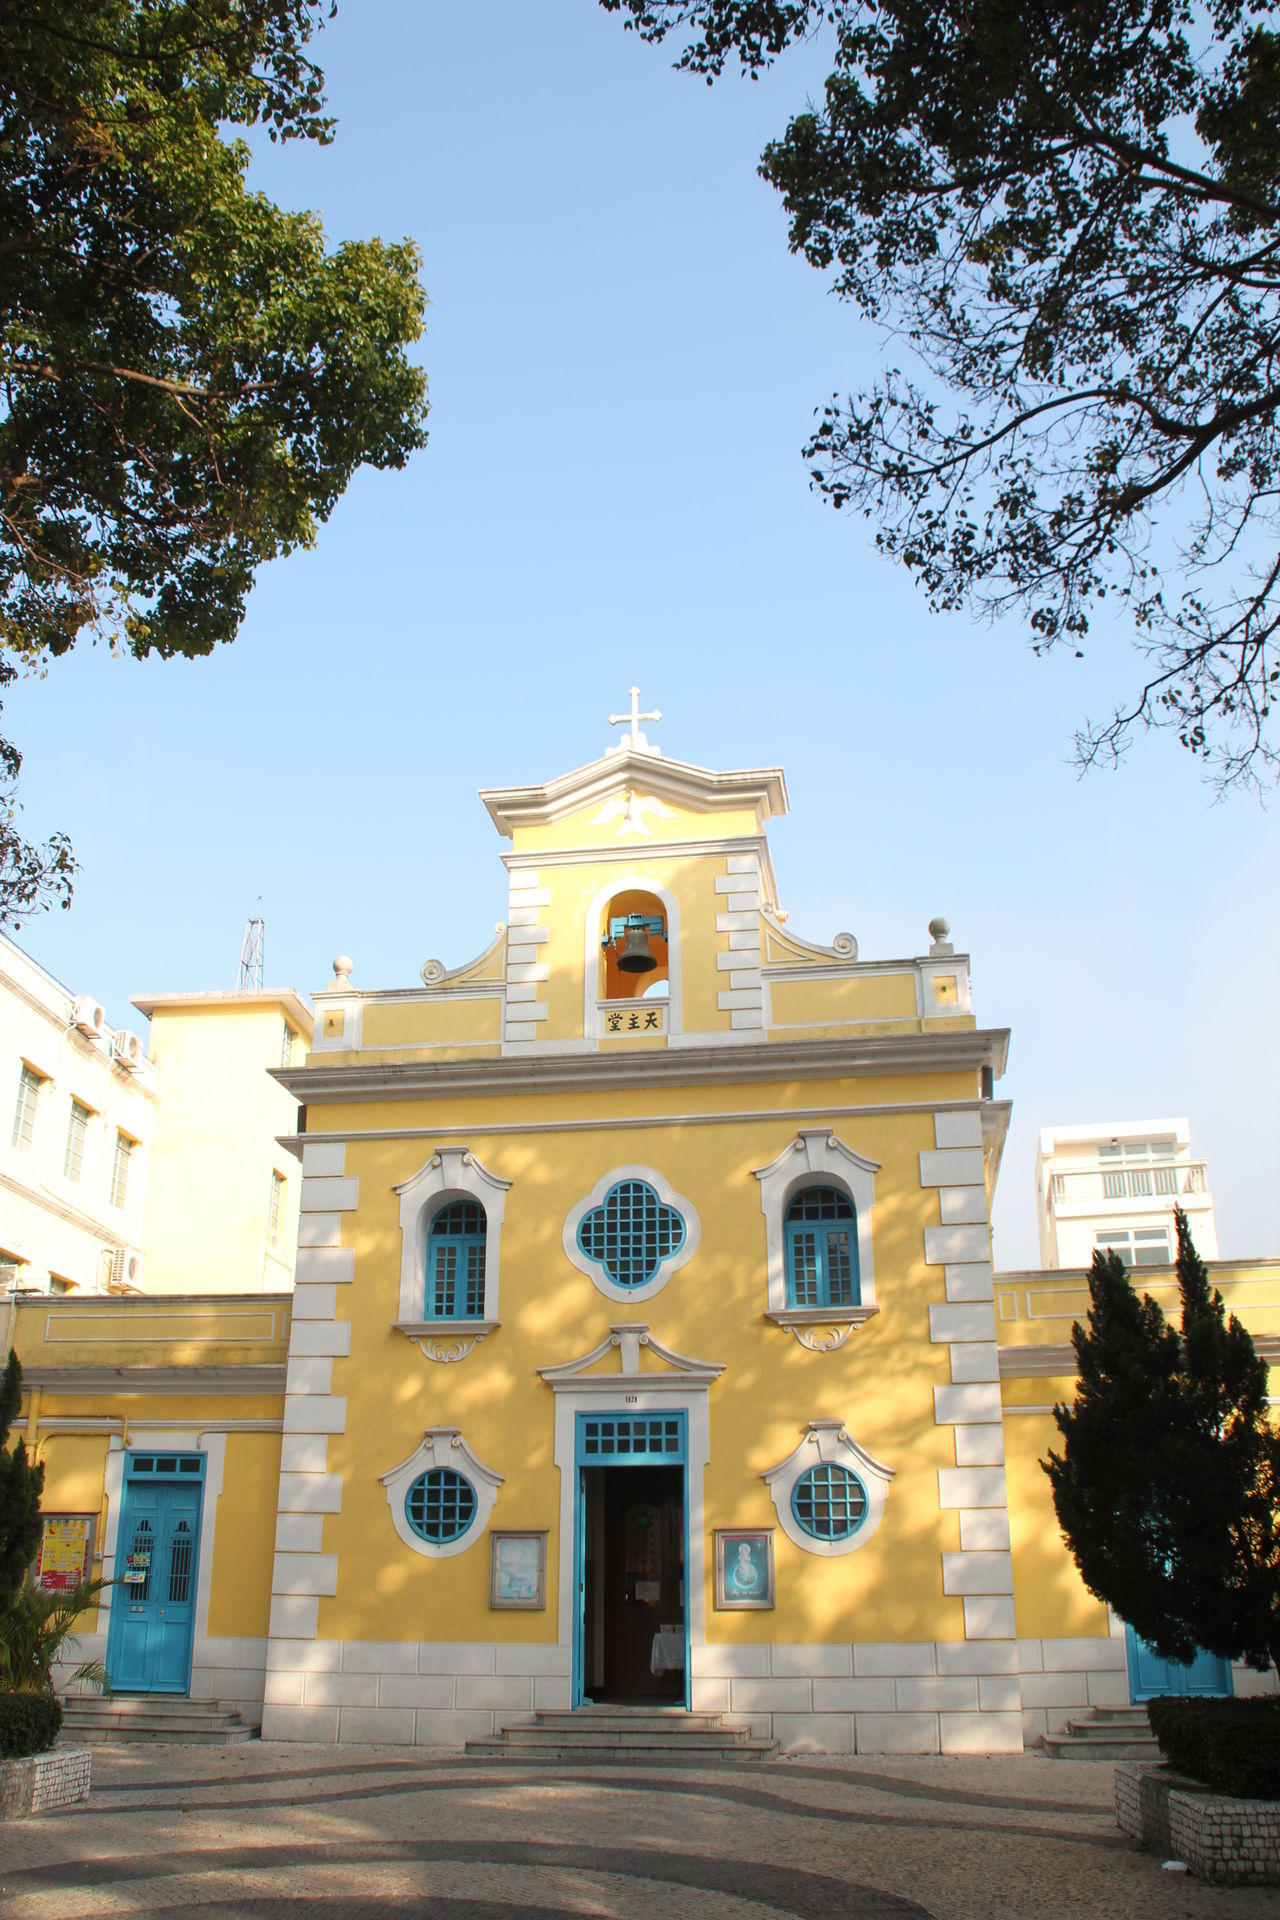 Architecture Blue Building Exterior Church City Clear Sky Colorful Building Day Historical Building Macau No People Outdoors Place Of Worship Sky Tree